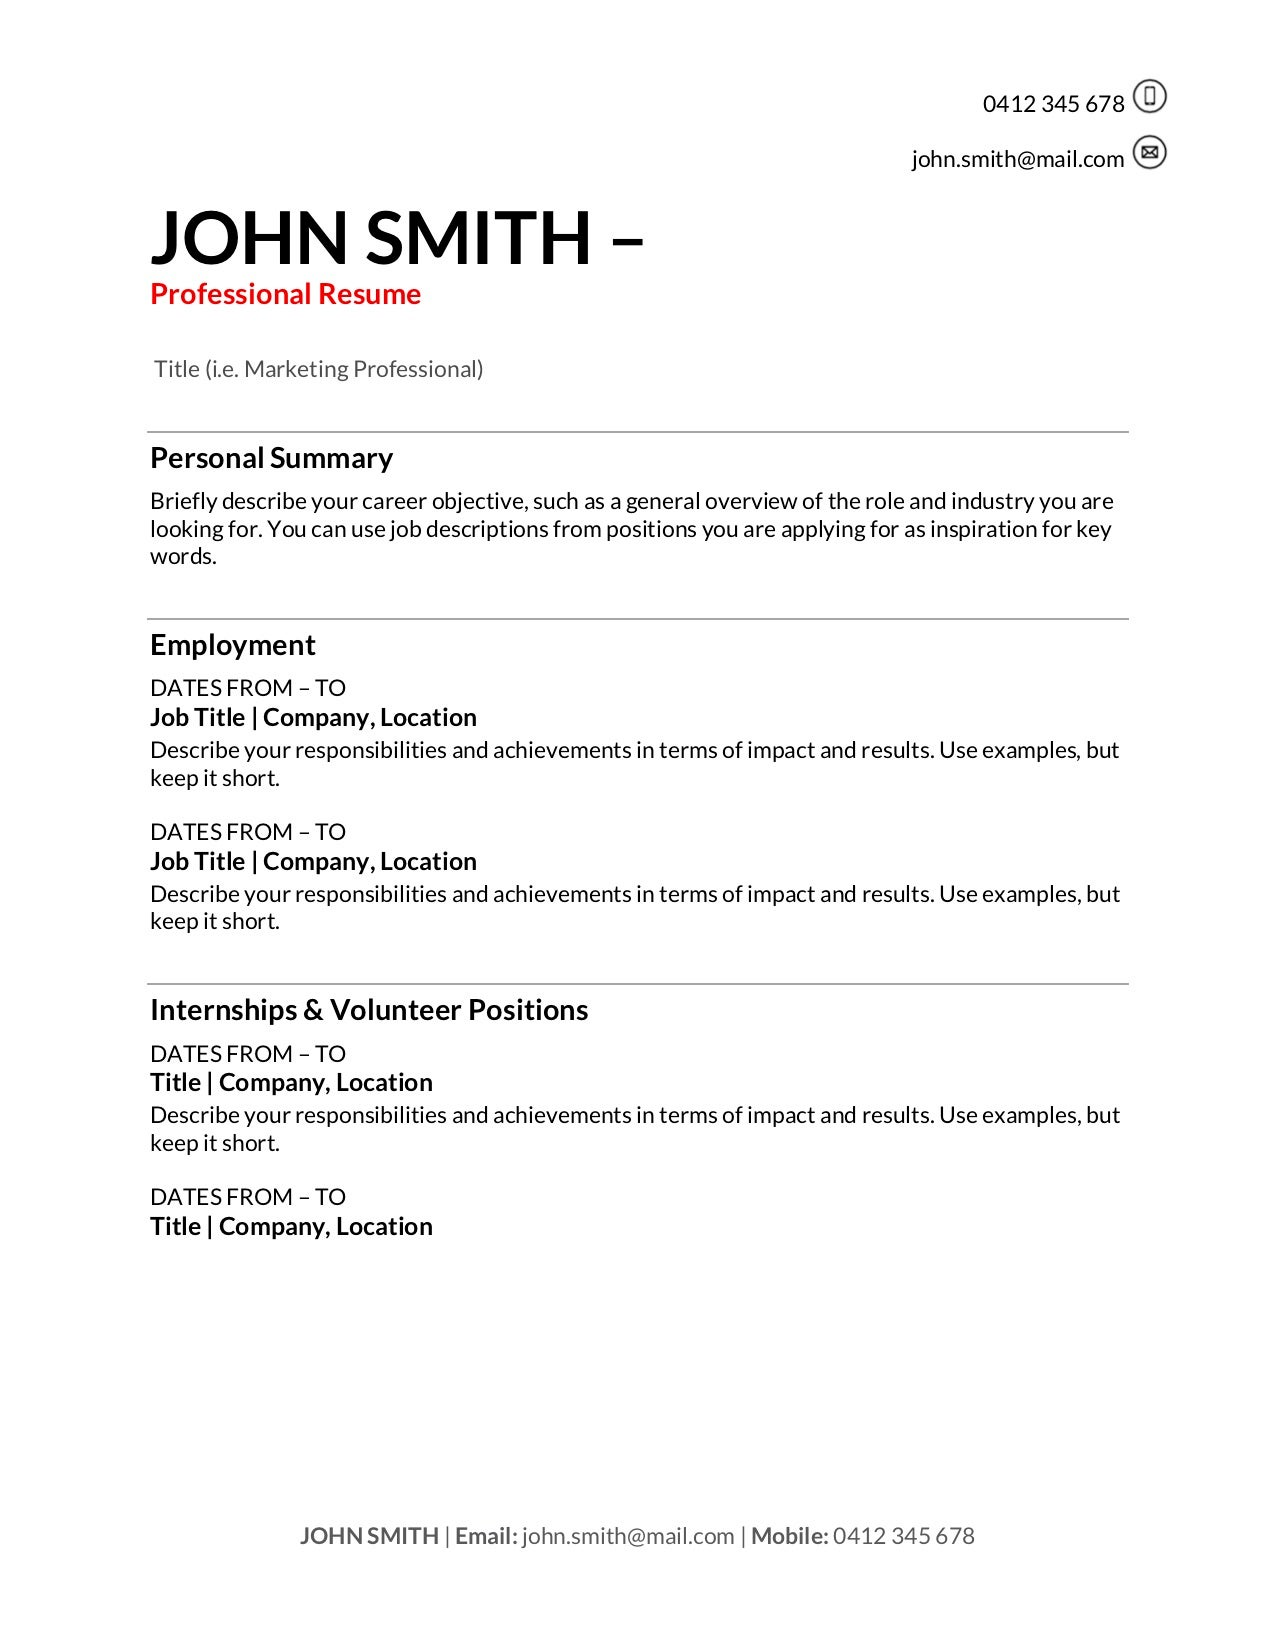 free resume templates to write in training au professional job template pictographic with Resume Professional Job Resume Template